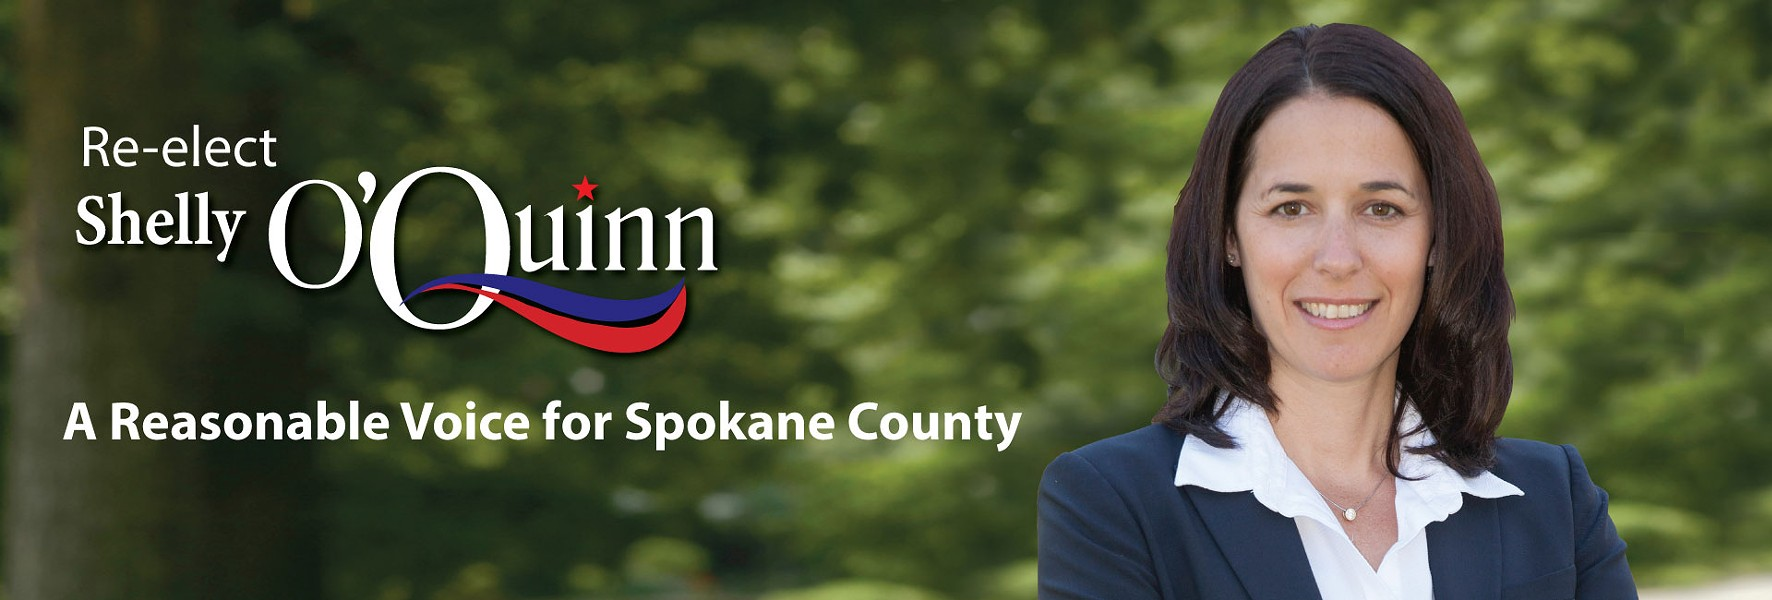 "Shelly O'Quinn's picture on her campaign website says she is a ""reasonable voice for Spokane County"""